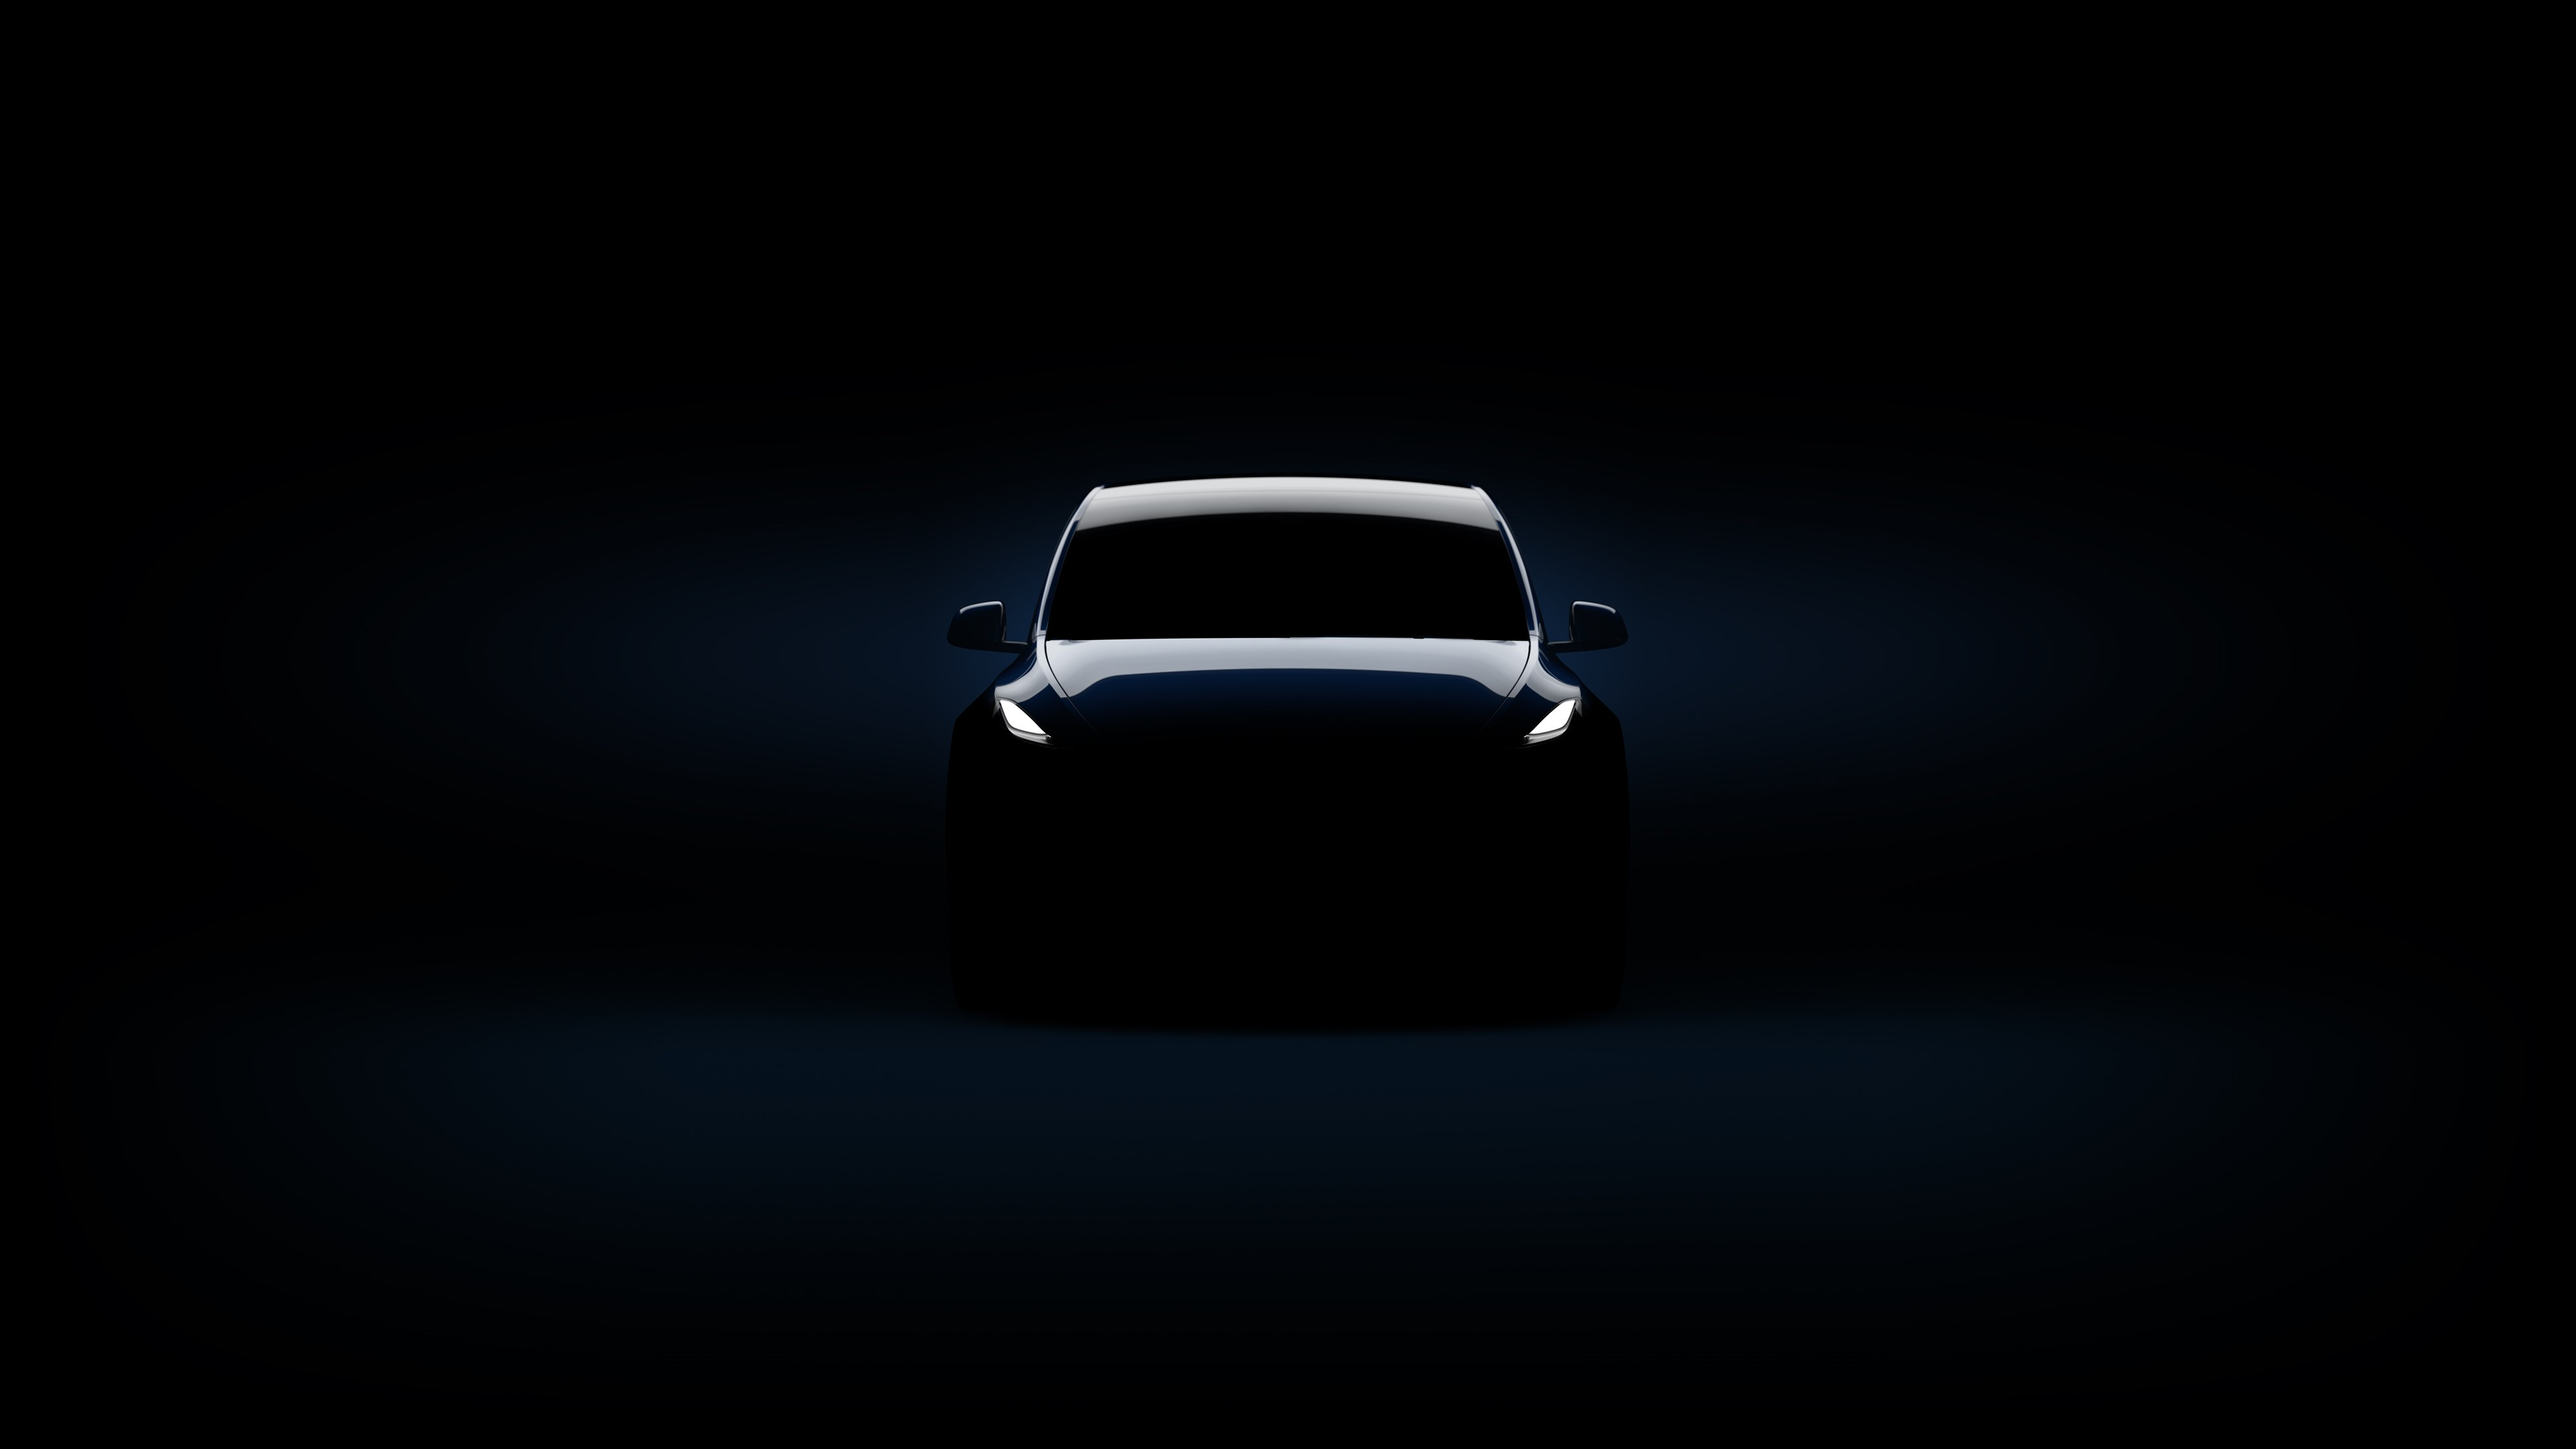 2019 Tesla Model Y 4k Hd Cars 4k Wallpapers Images Backgrounds Photos And Pictures